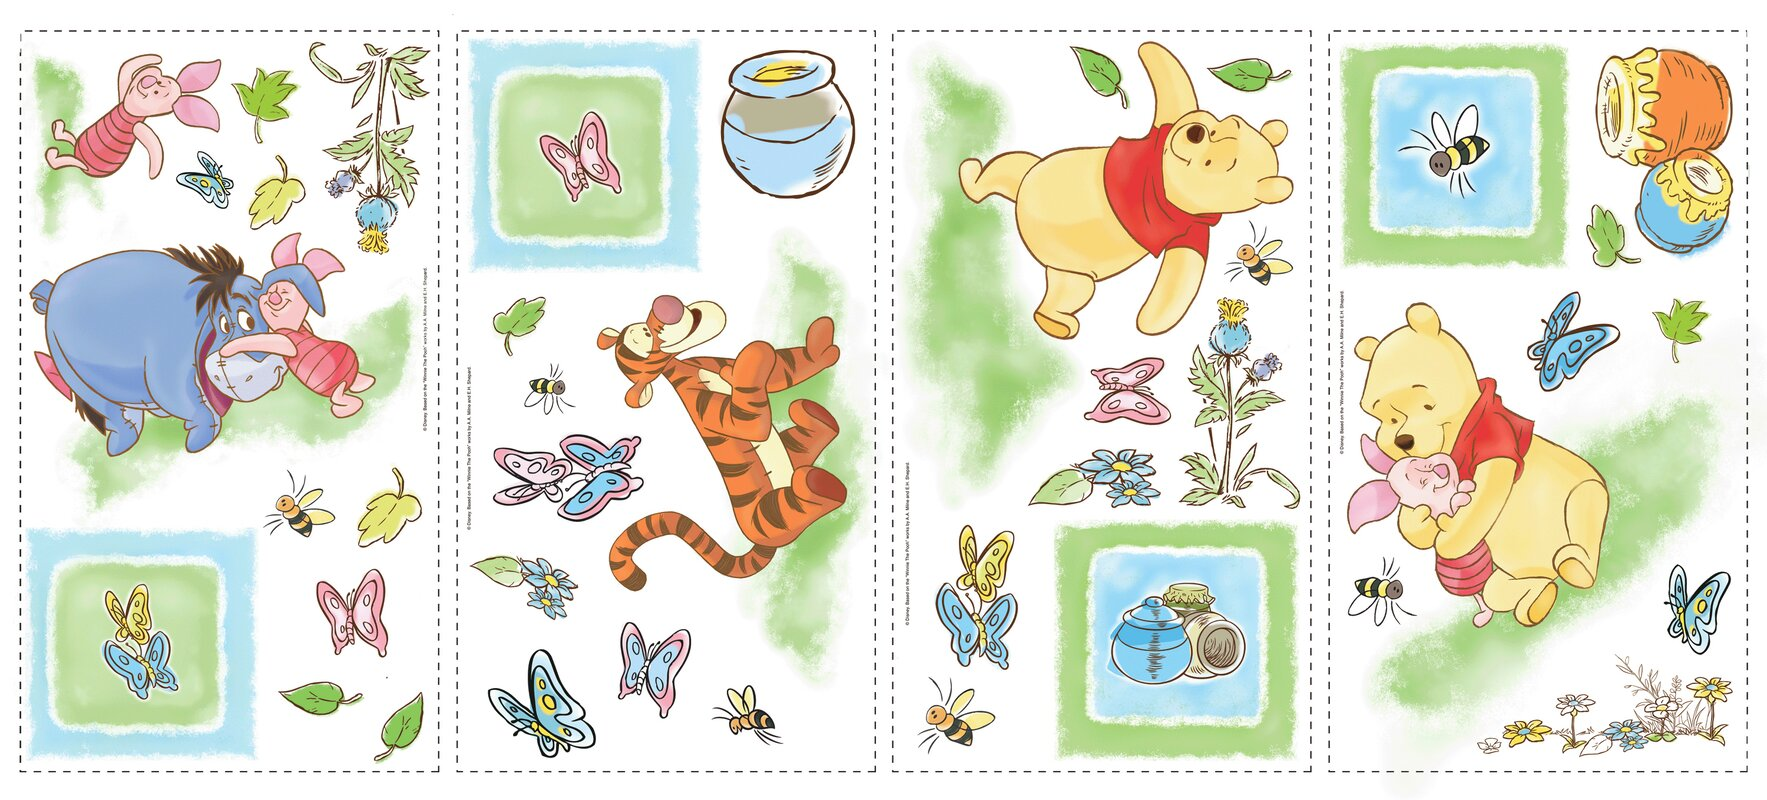 Winnie the pooh toddler bedding - Default_name